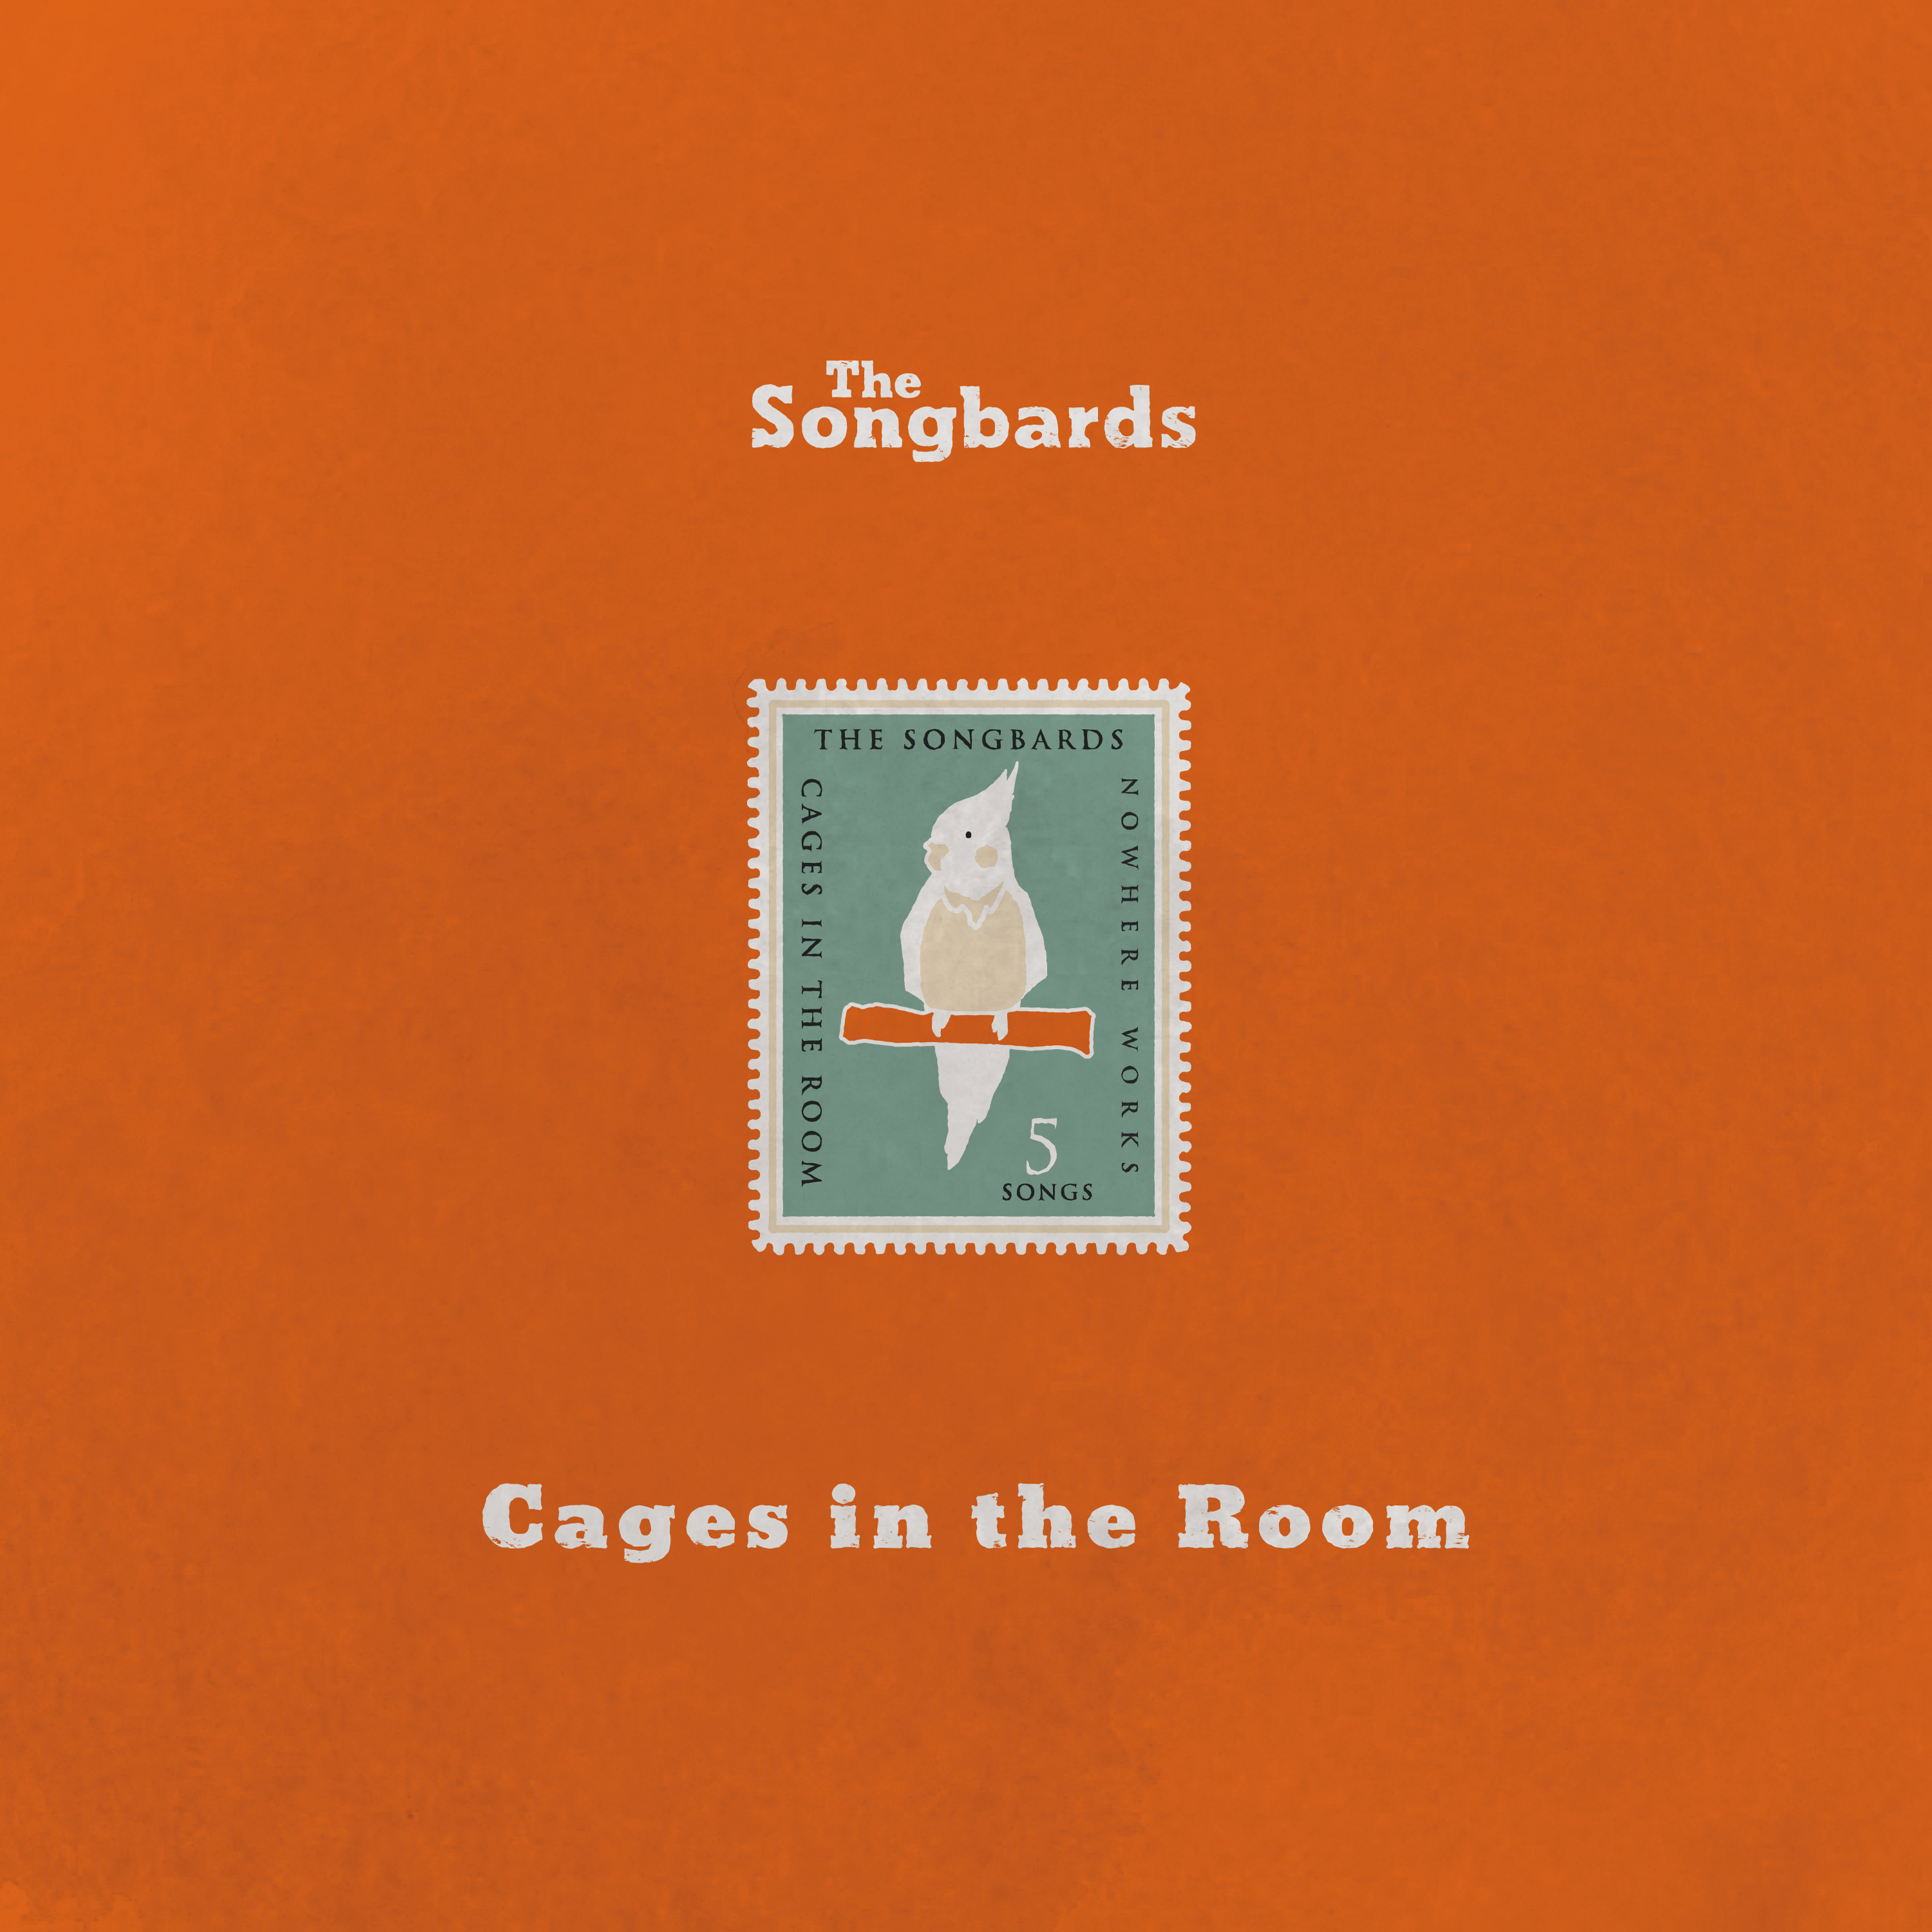 「Cages in the Room」